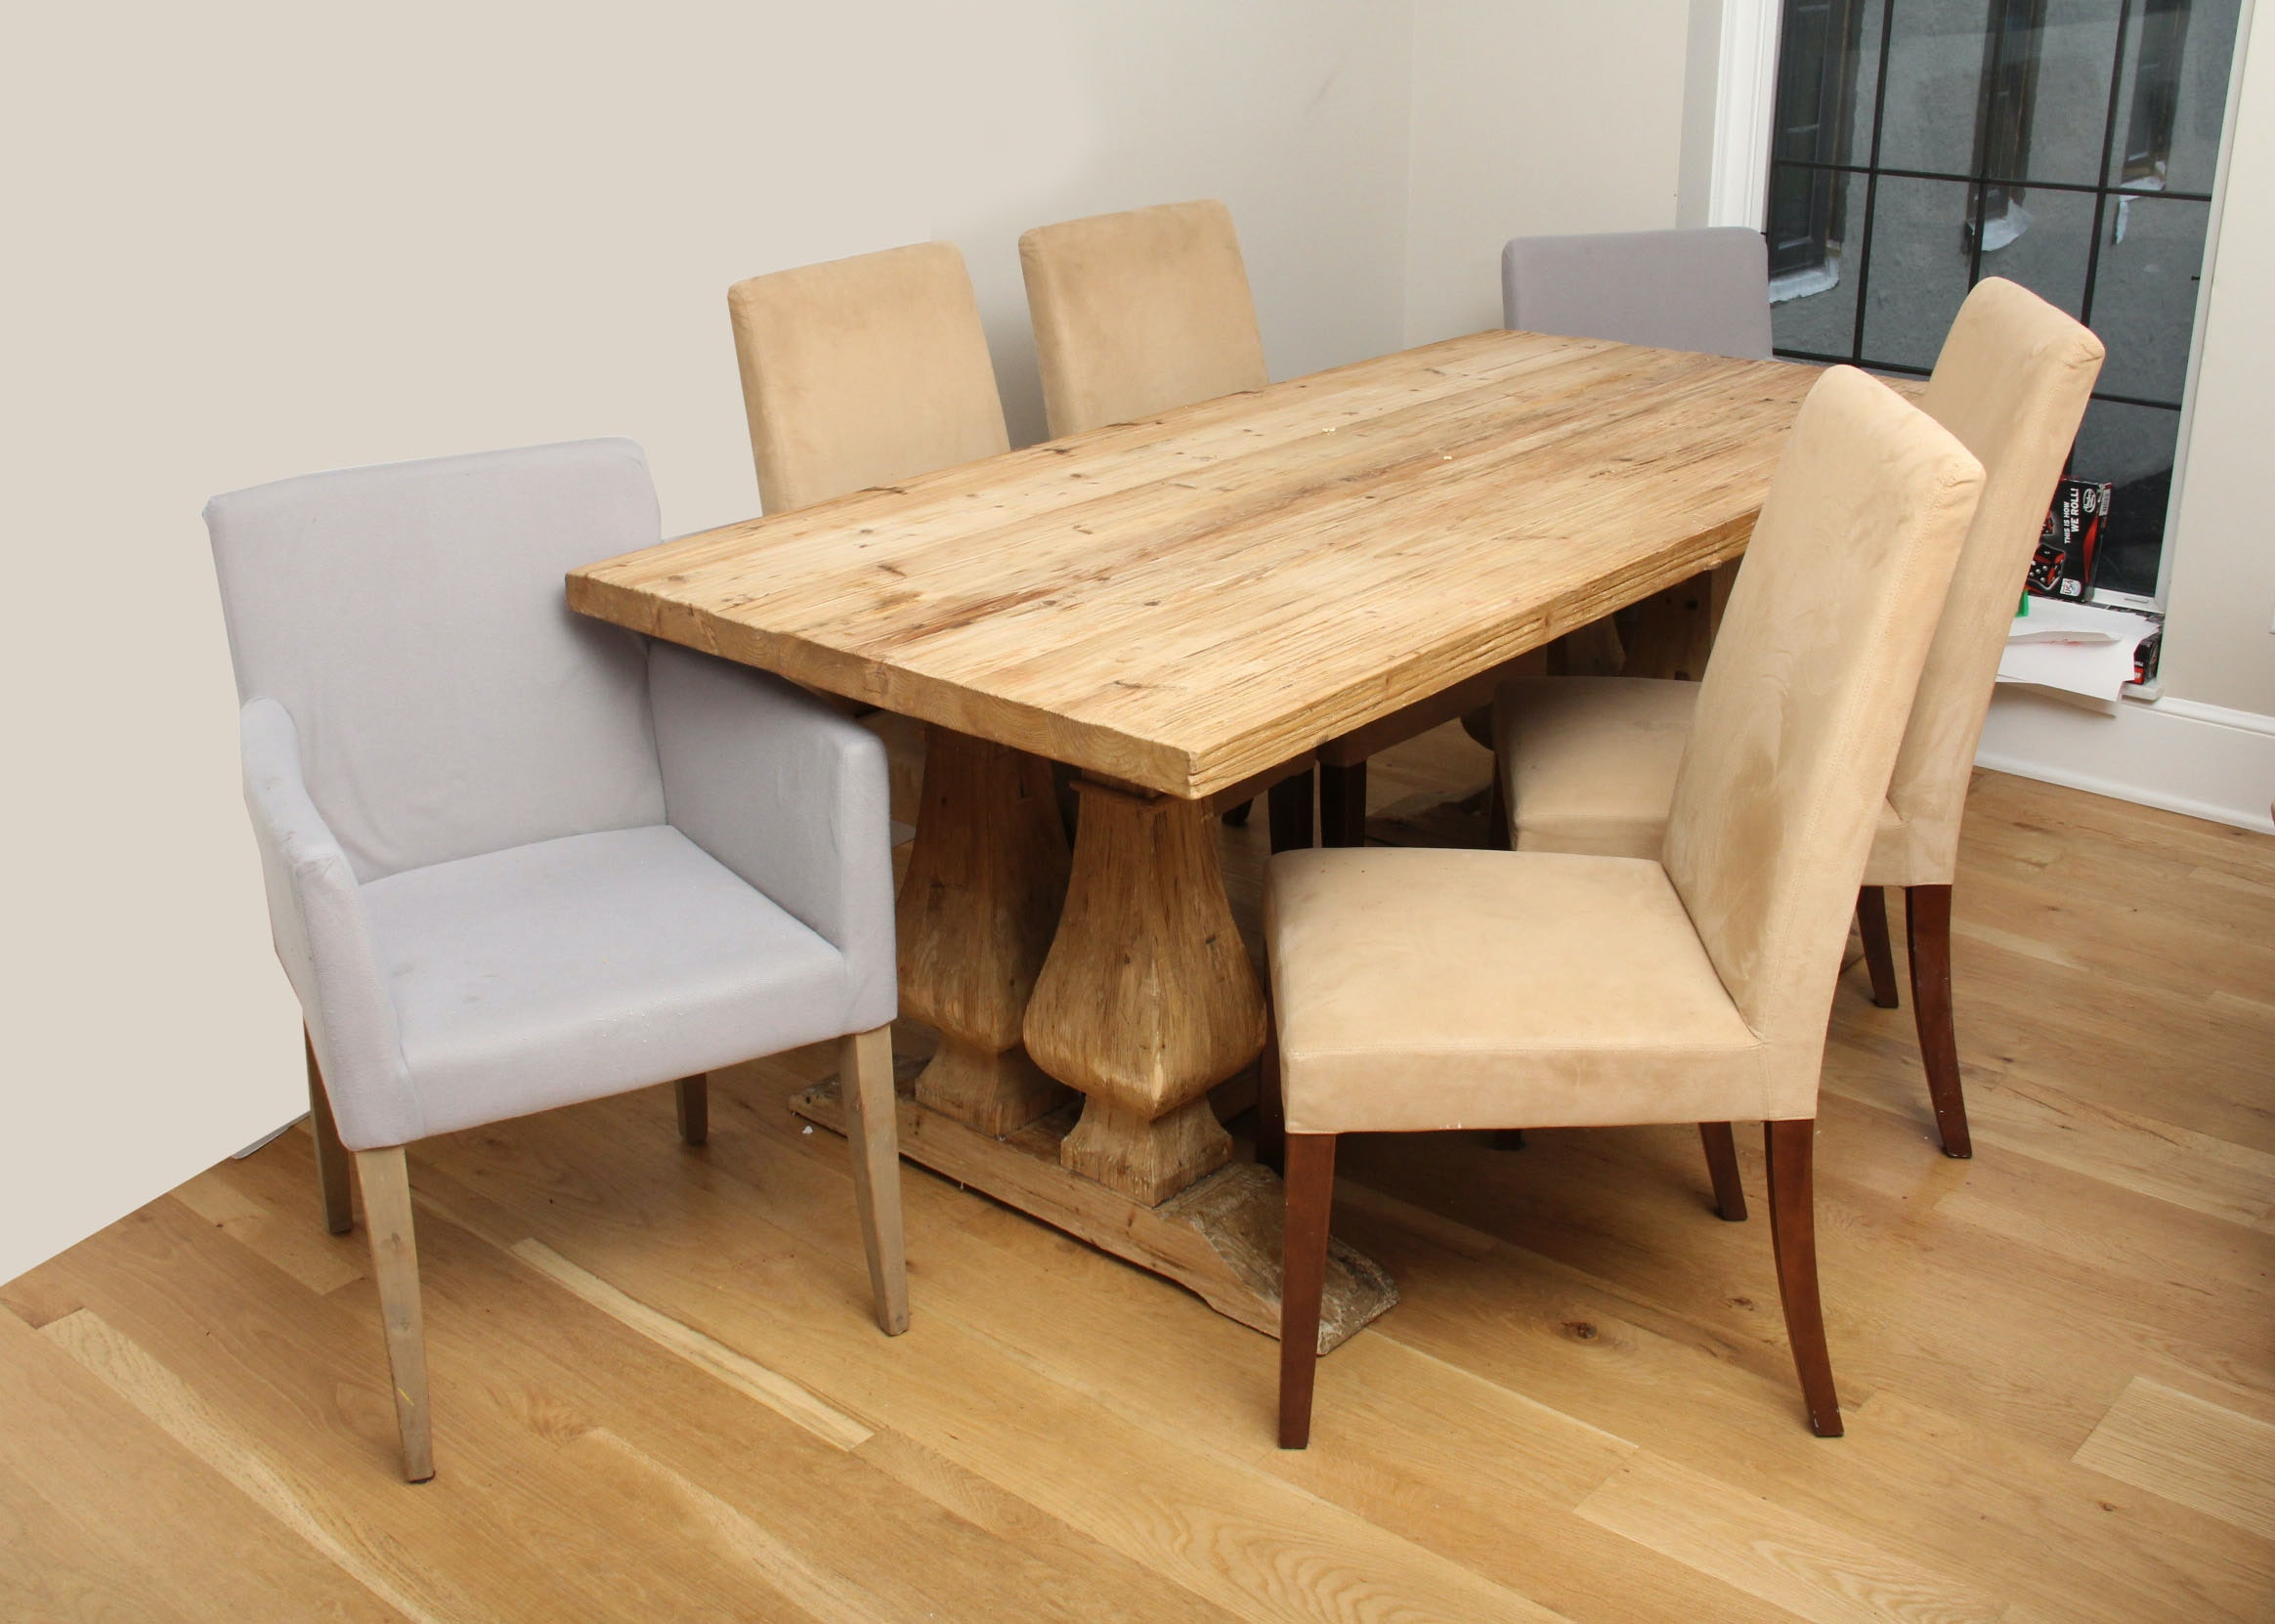 Rustic Rough Hewn Cypress Wood Table And Chairs ...